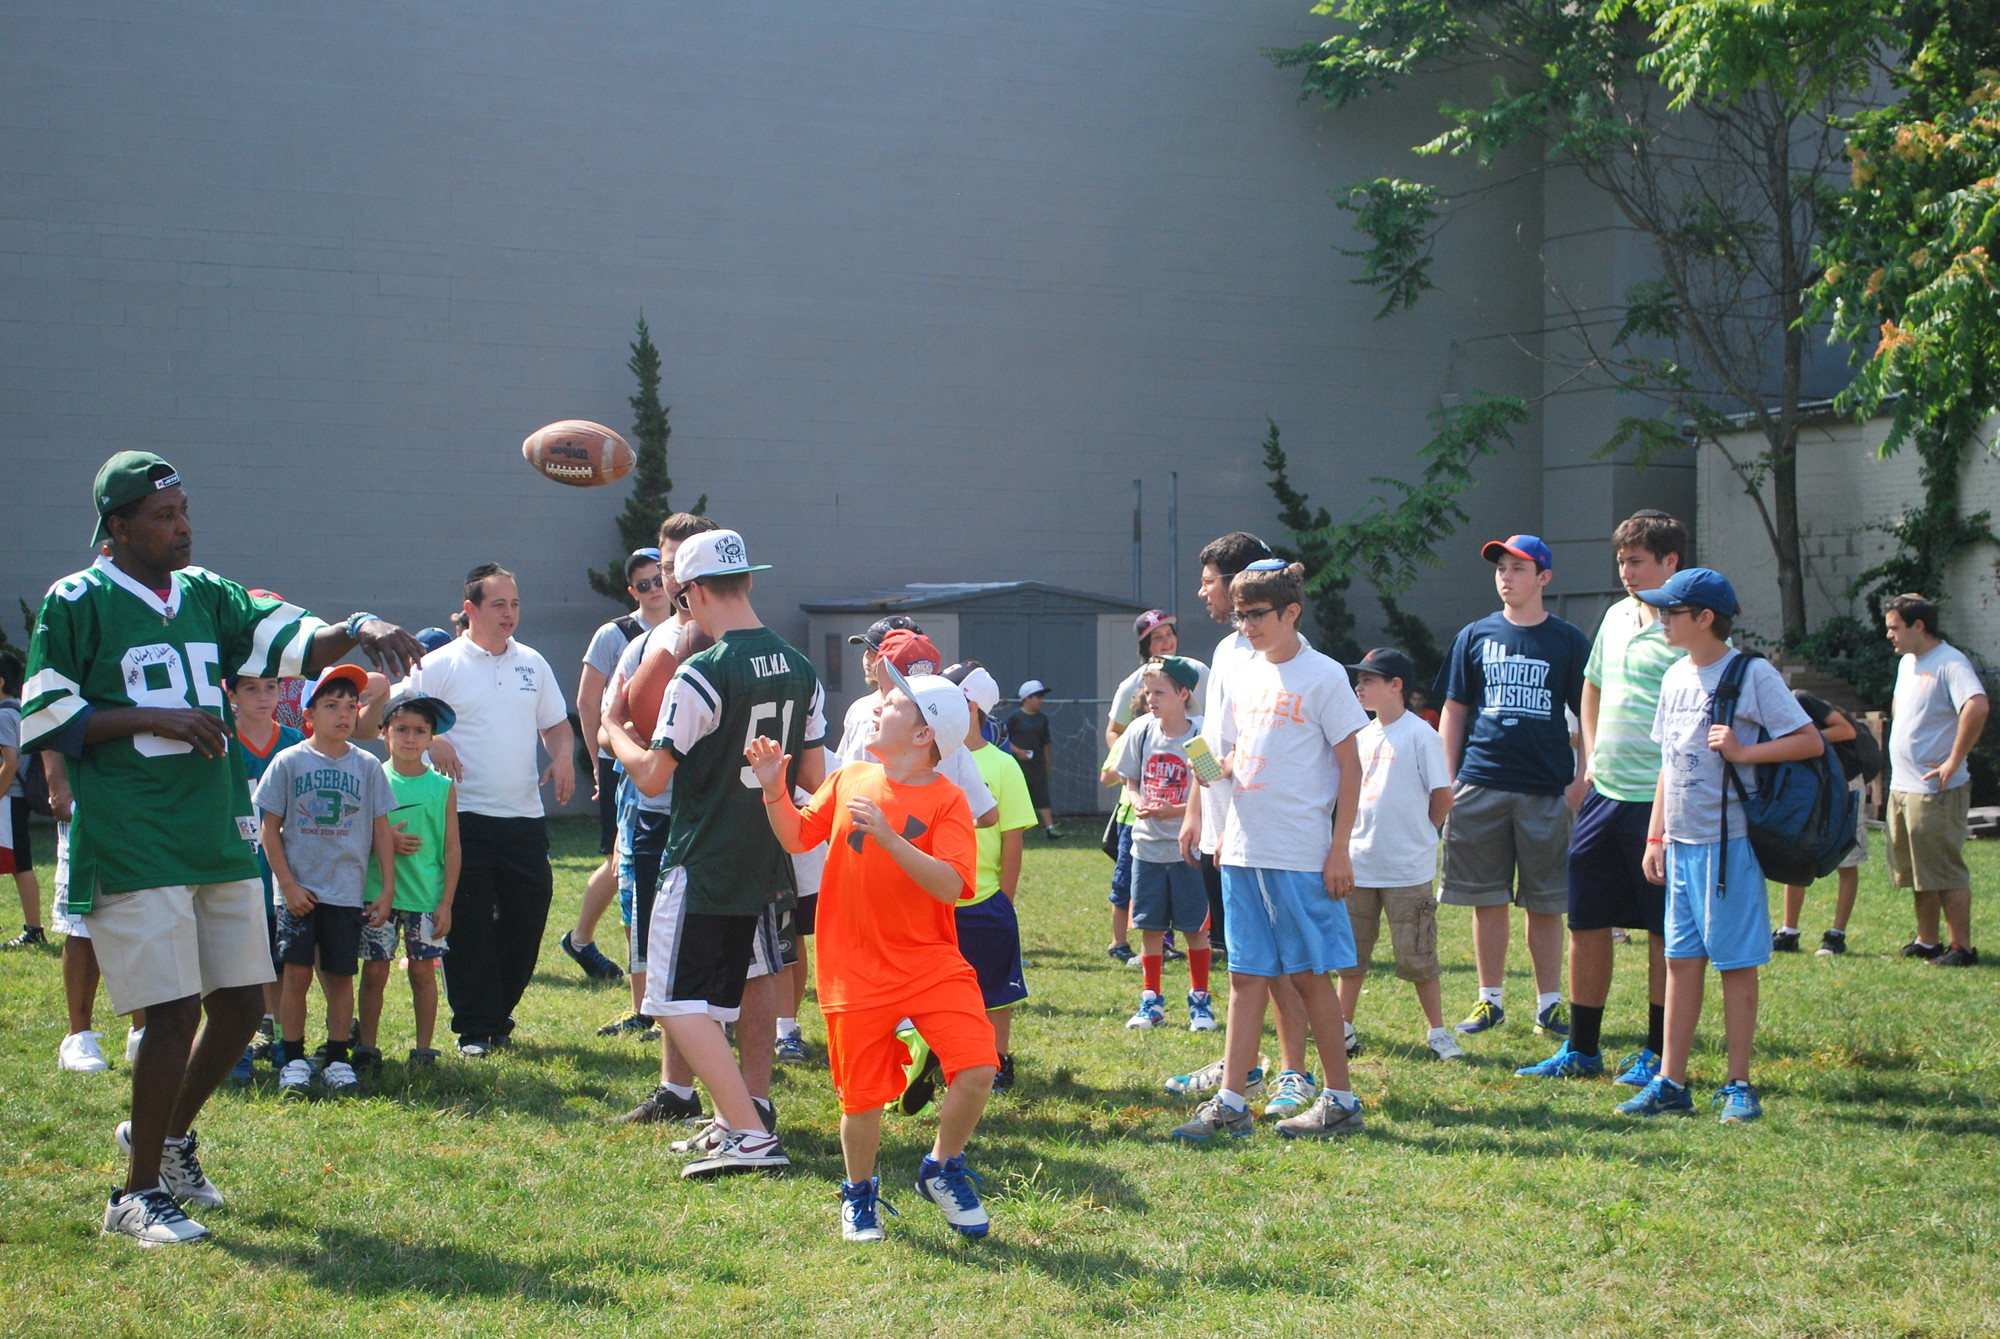 Former Jets receiver Wesley Walker put his quarterbacking skills to use and threw footballs to Camp Hillel campers such as Andy Mordowitz, 8.